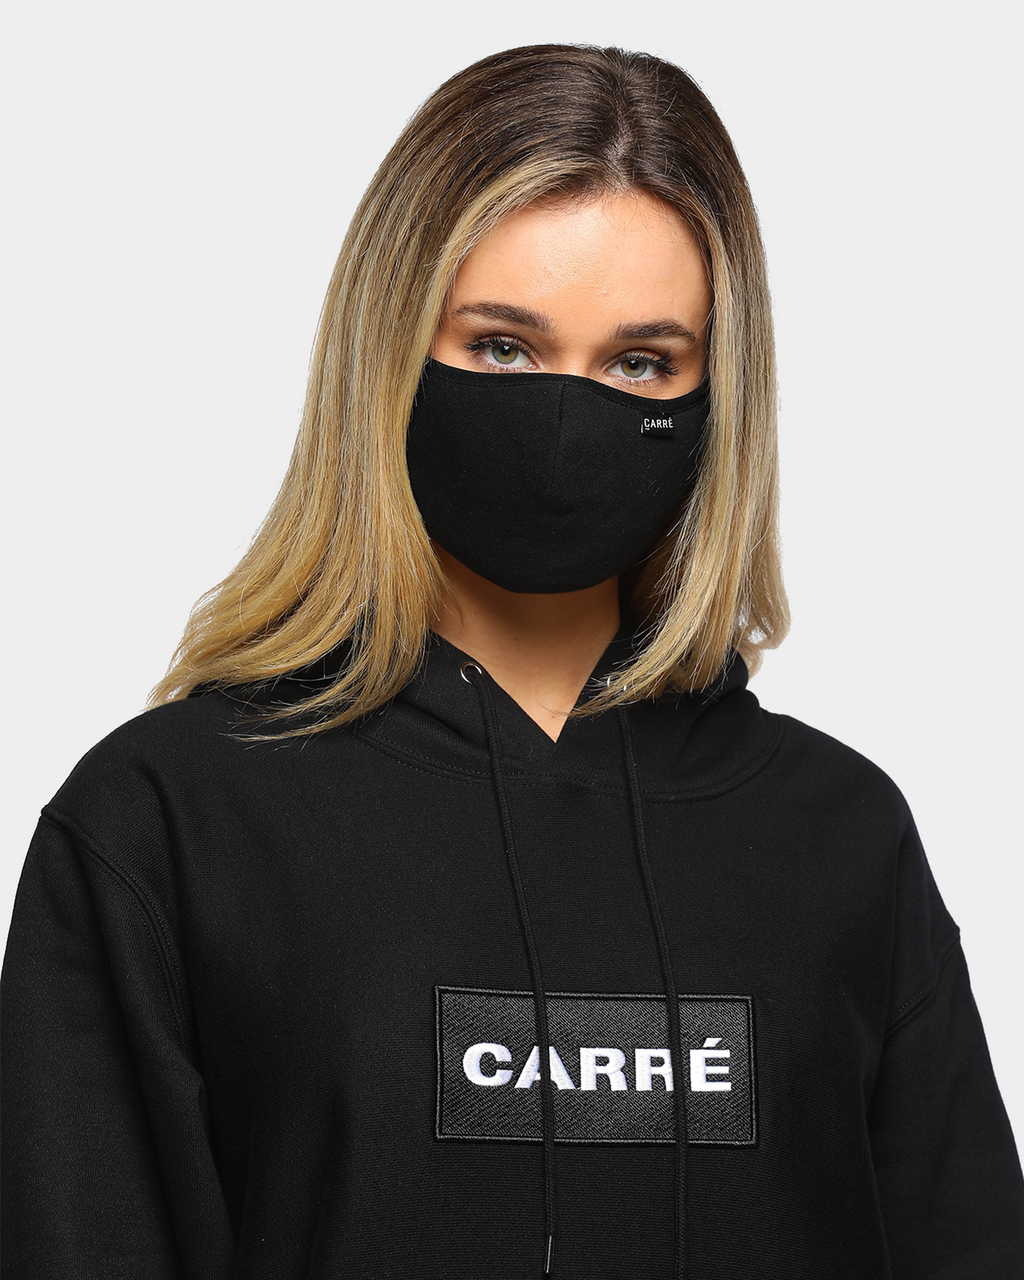 Carré Unisex Enorme Masque Face Mask Black